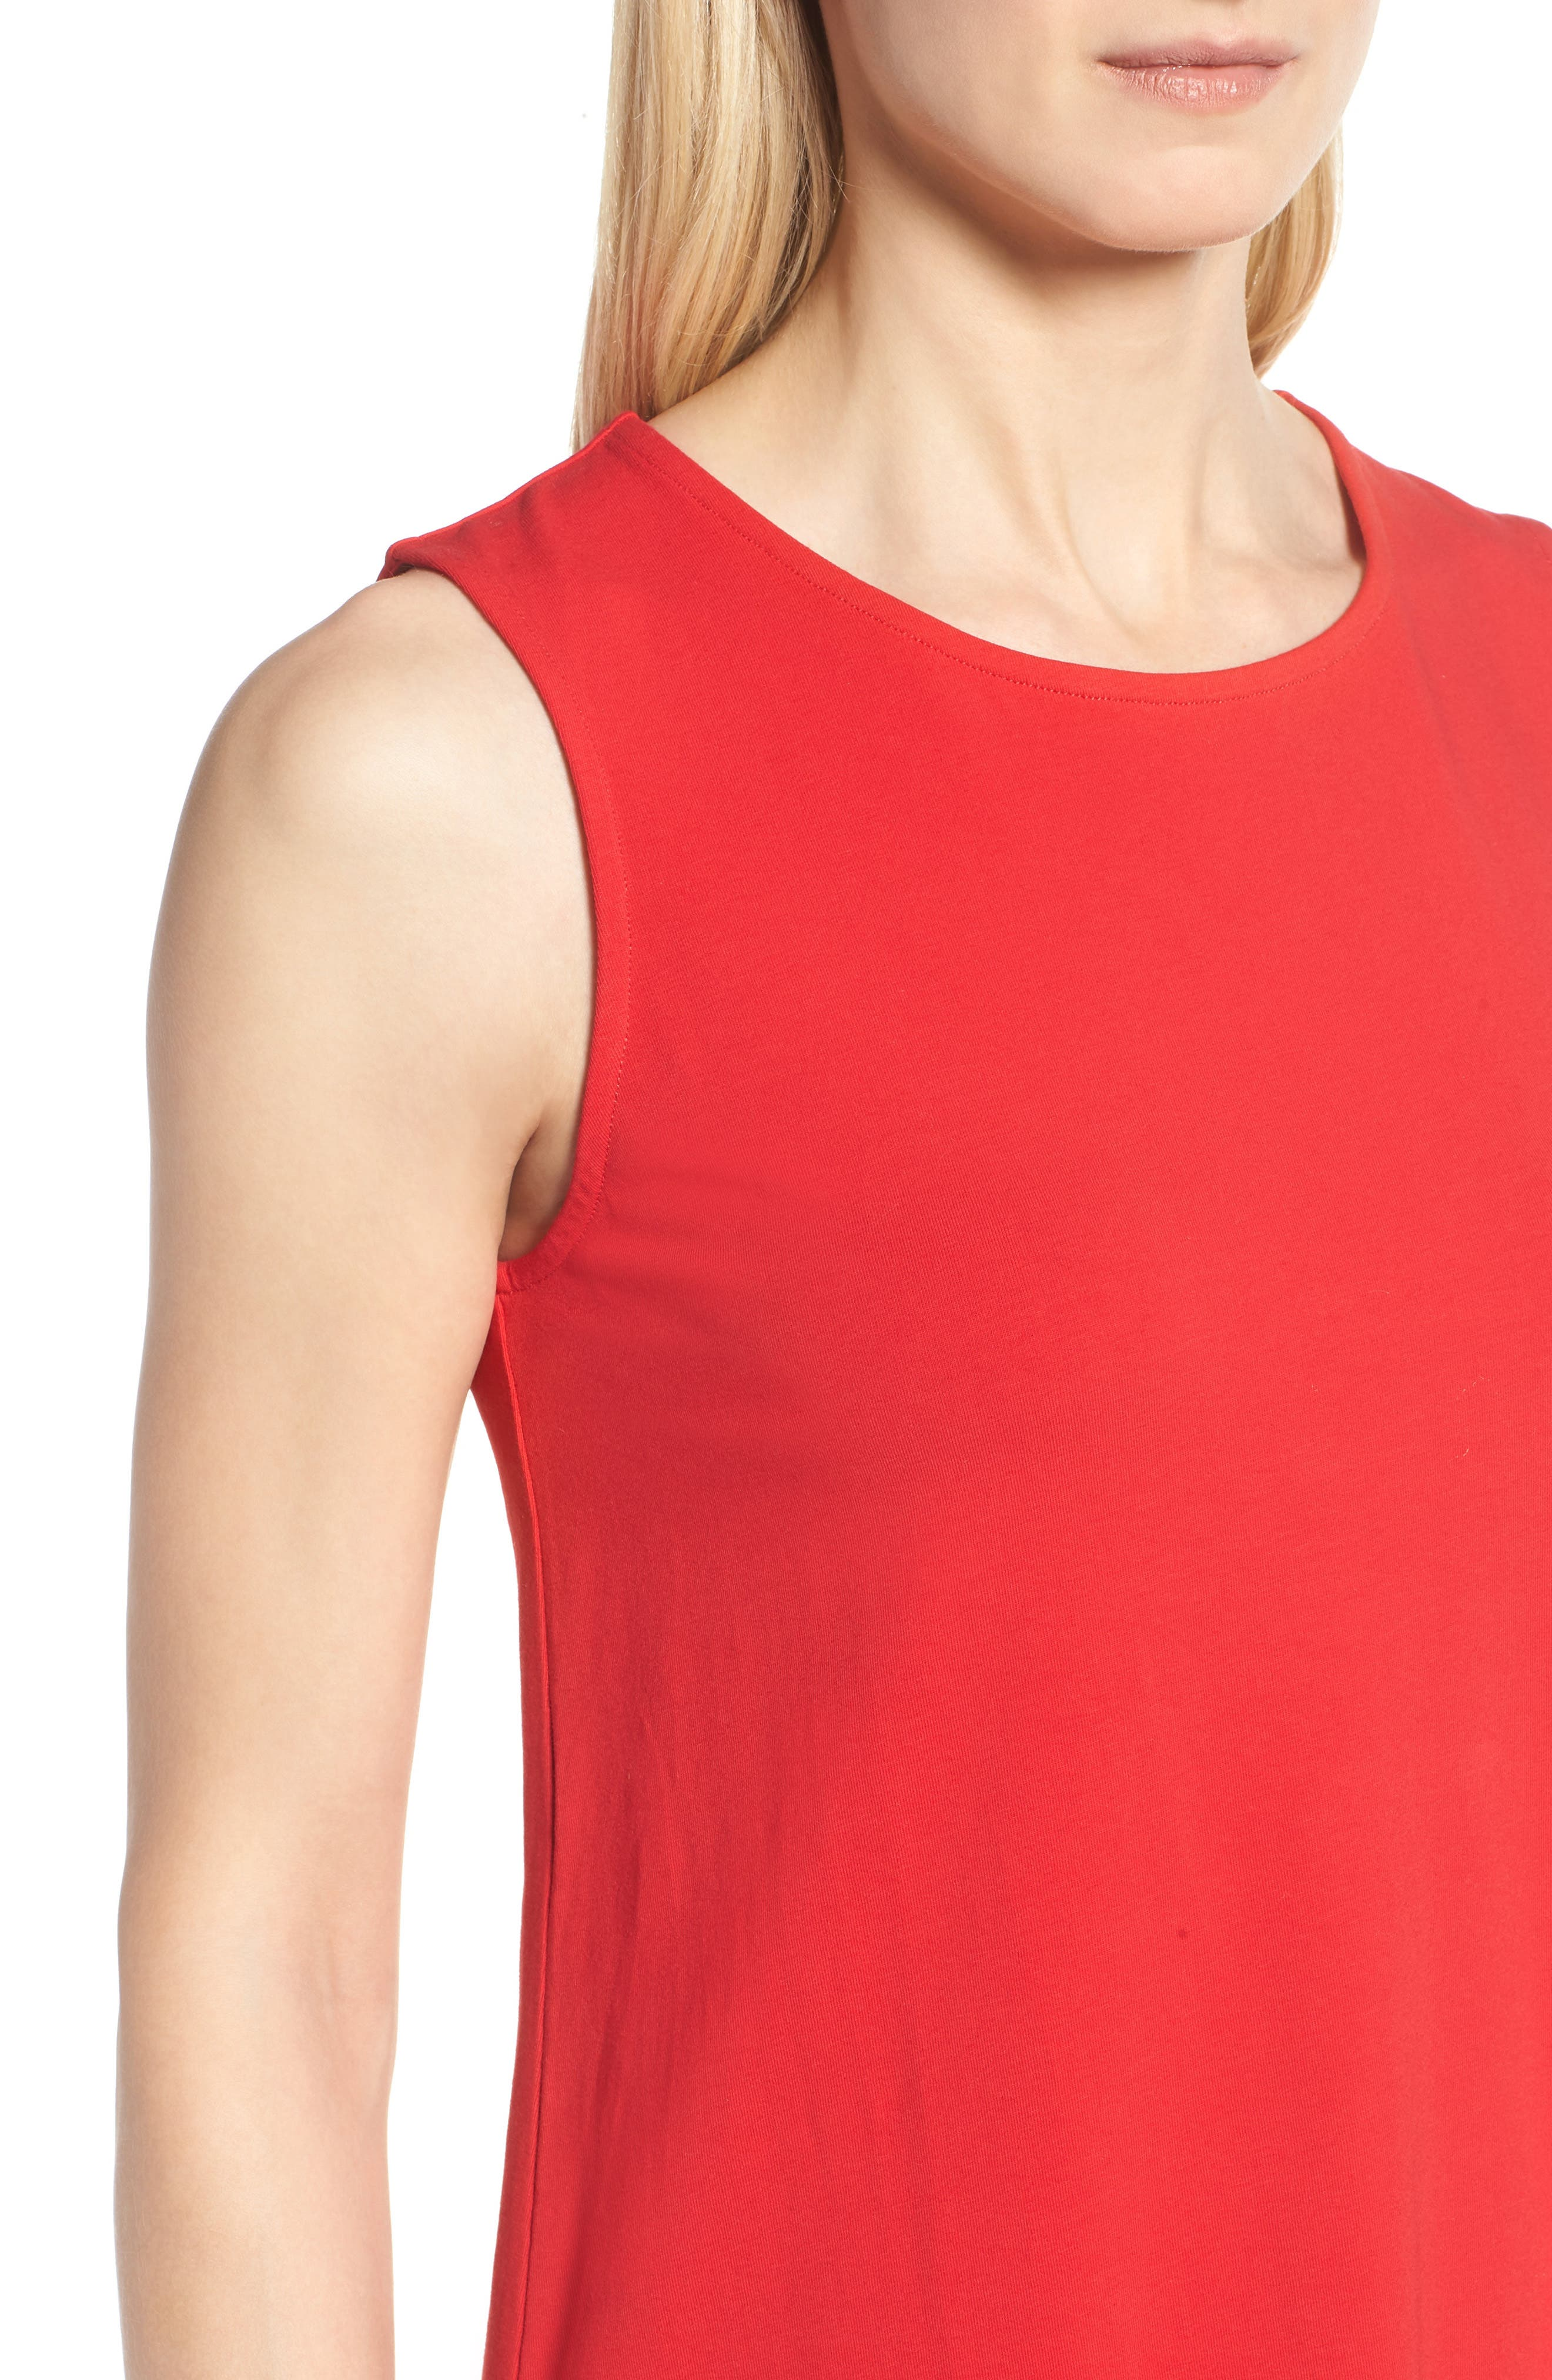 Sweet Escape Tank Dress,                             Alternate thumbnail 4, color,                             Red Sangria